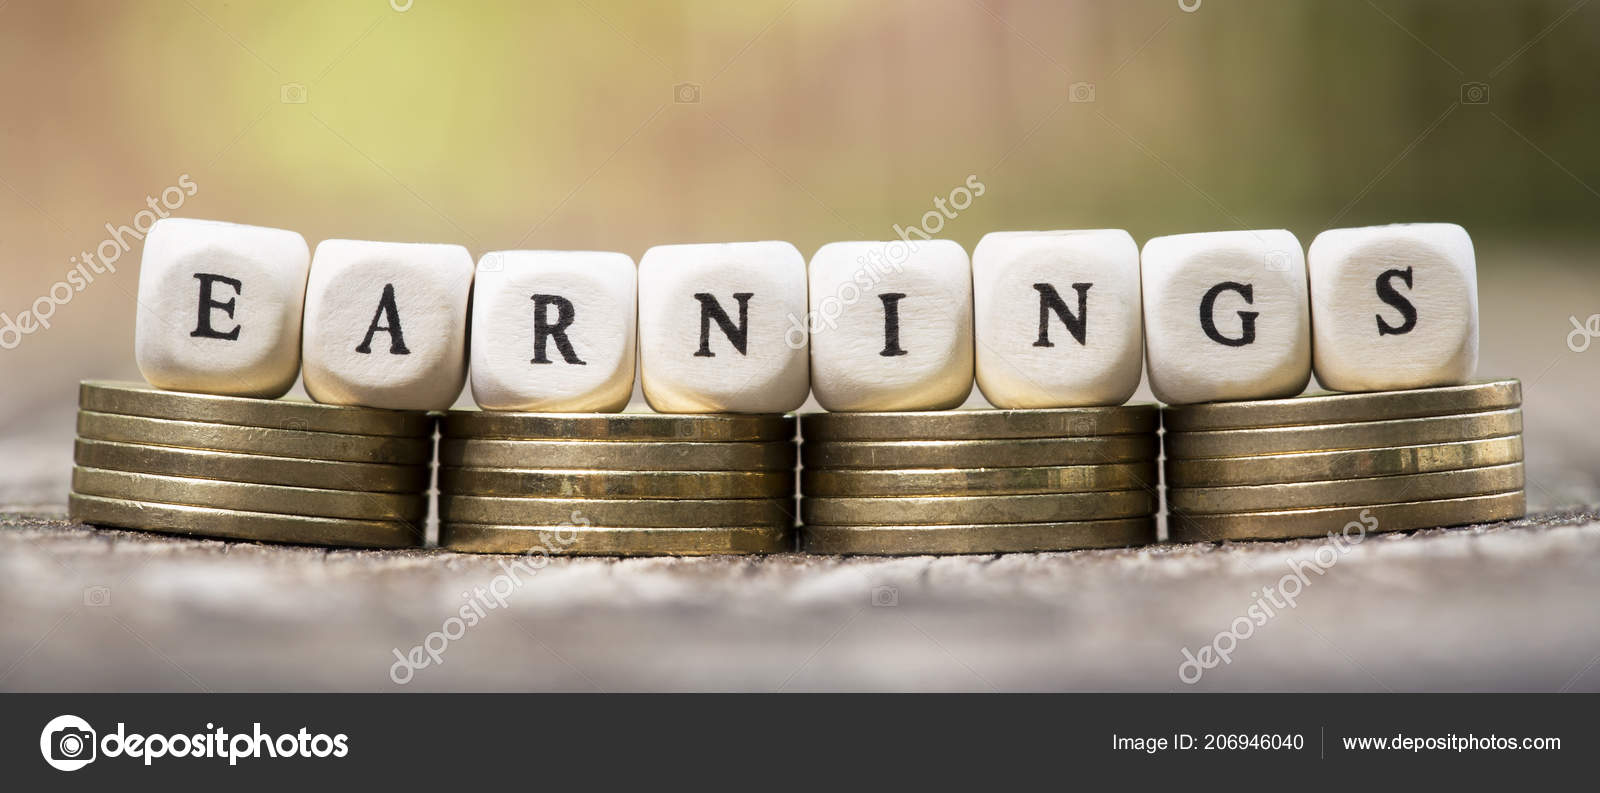 Earn Money Earnings Concept Web Banner Gold Coins Text — Stock Photo